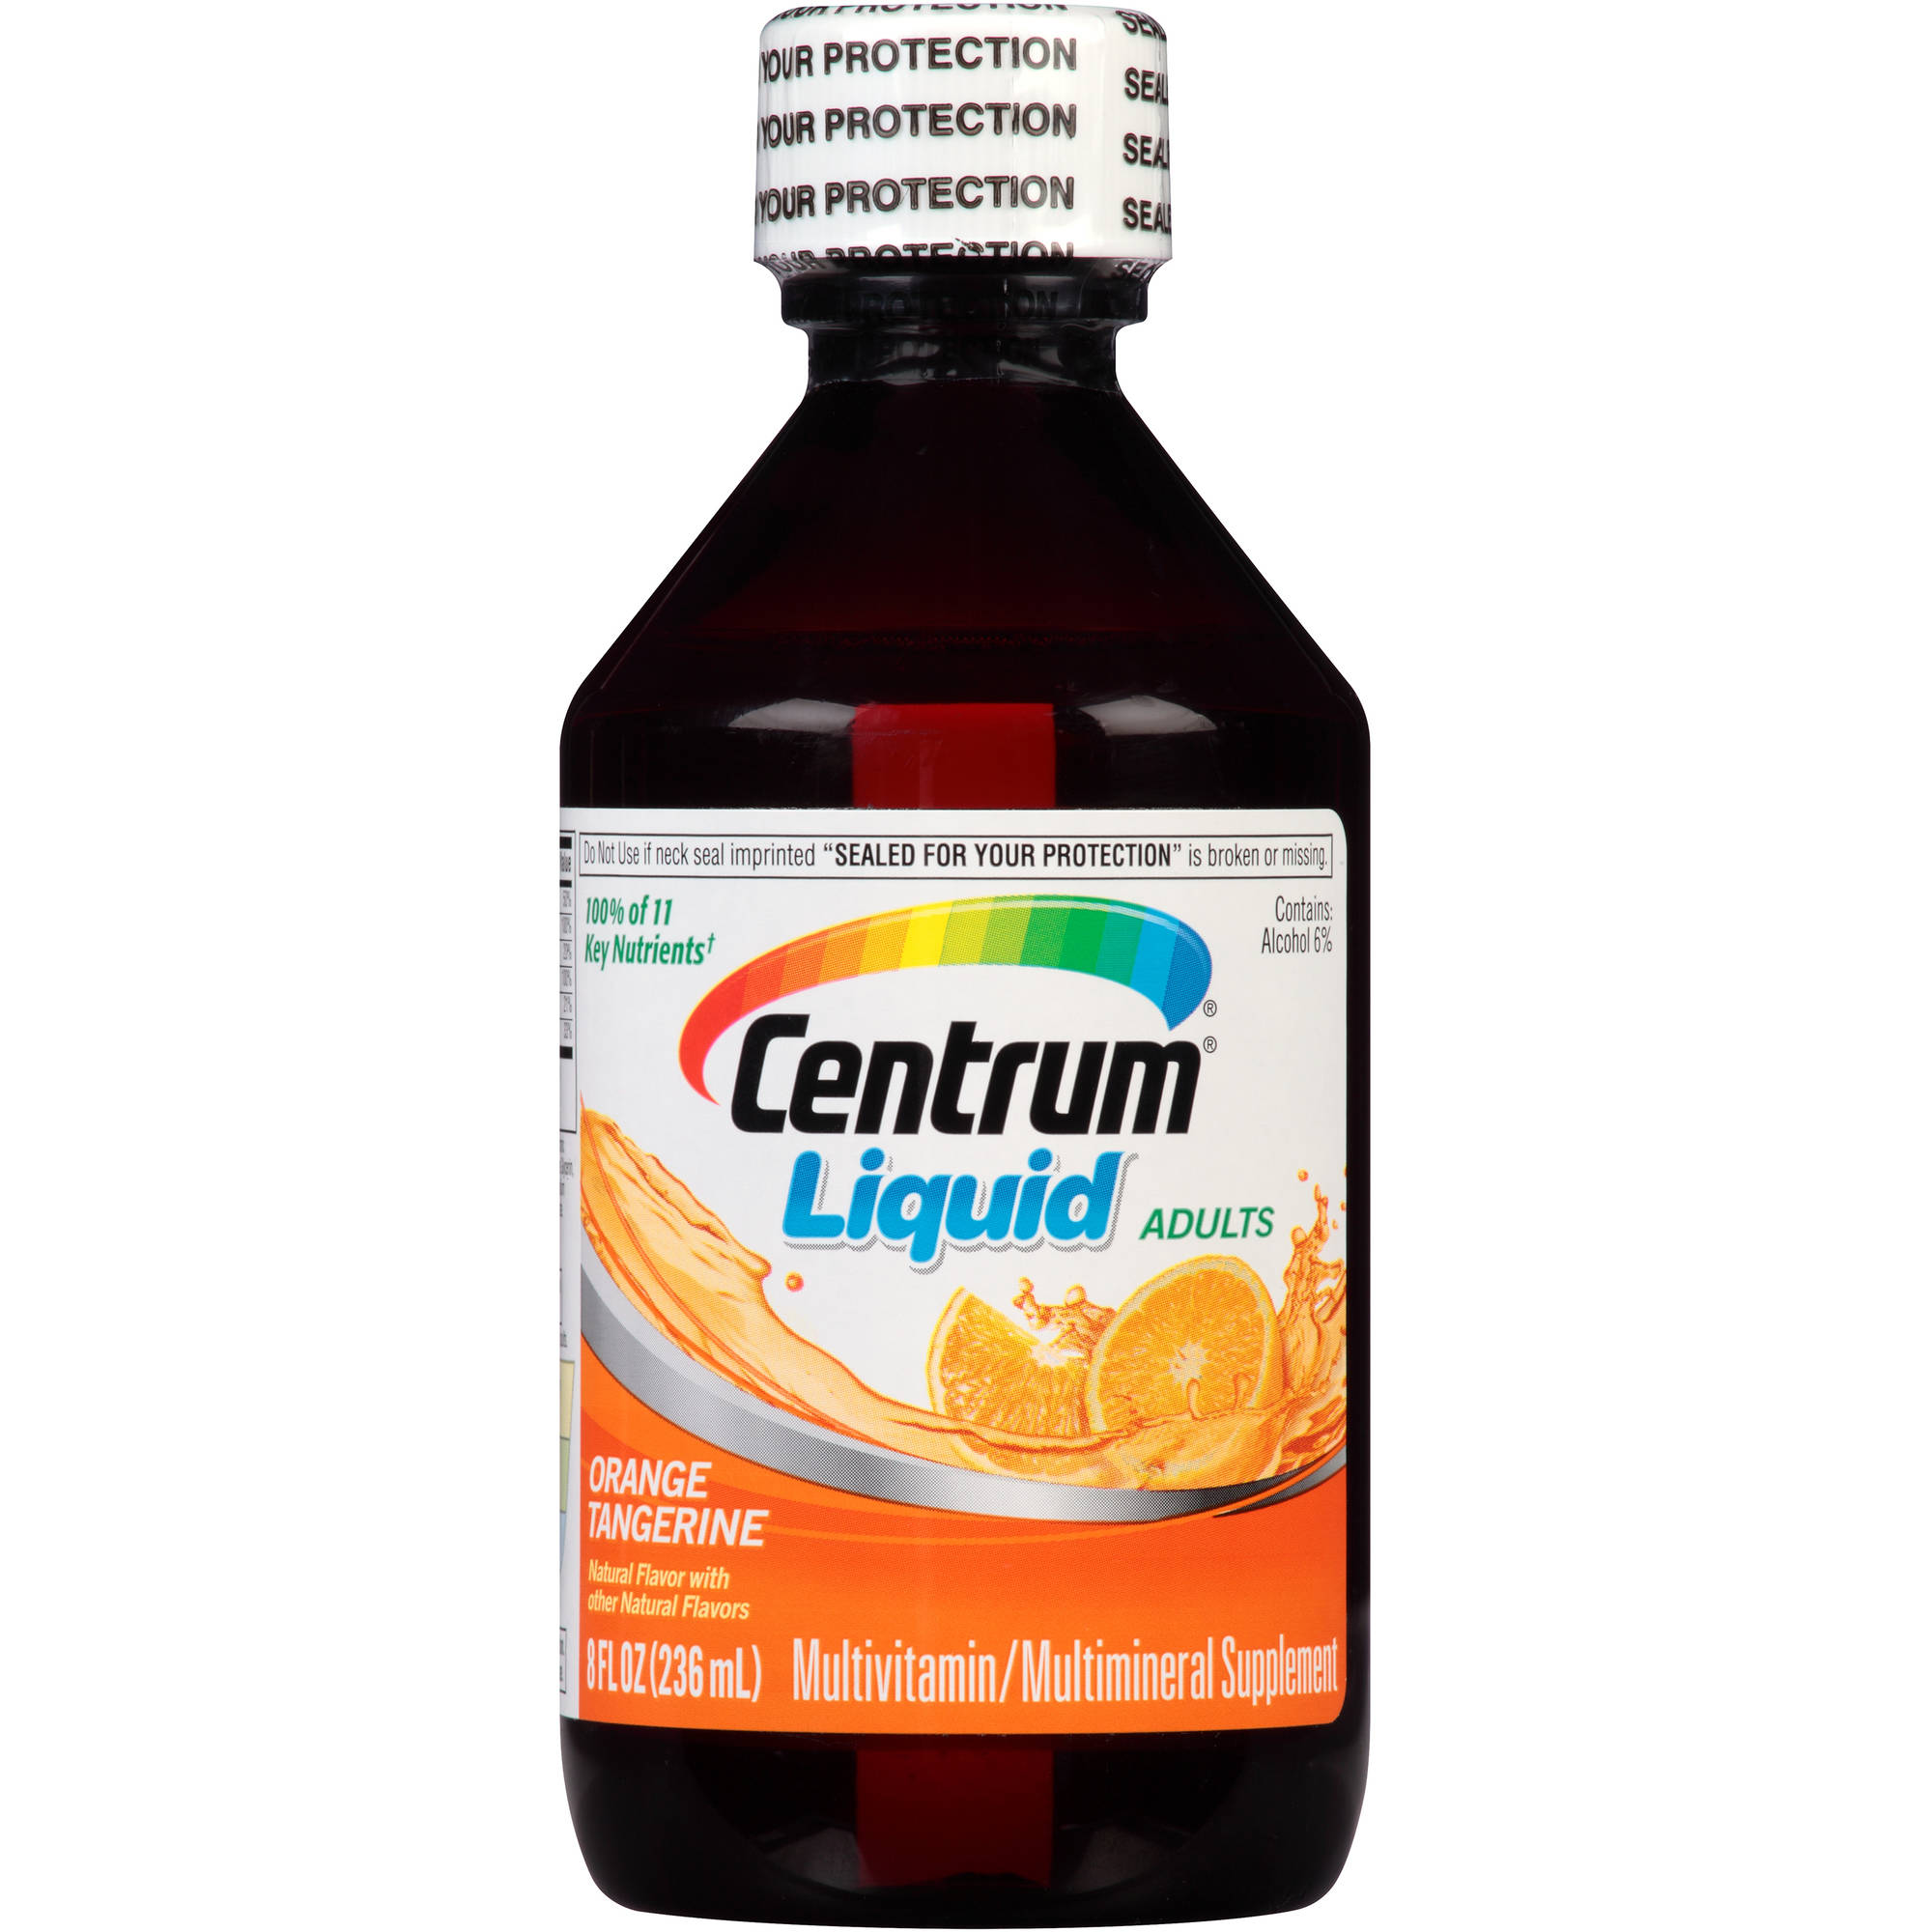 Adult liquid vitamins